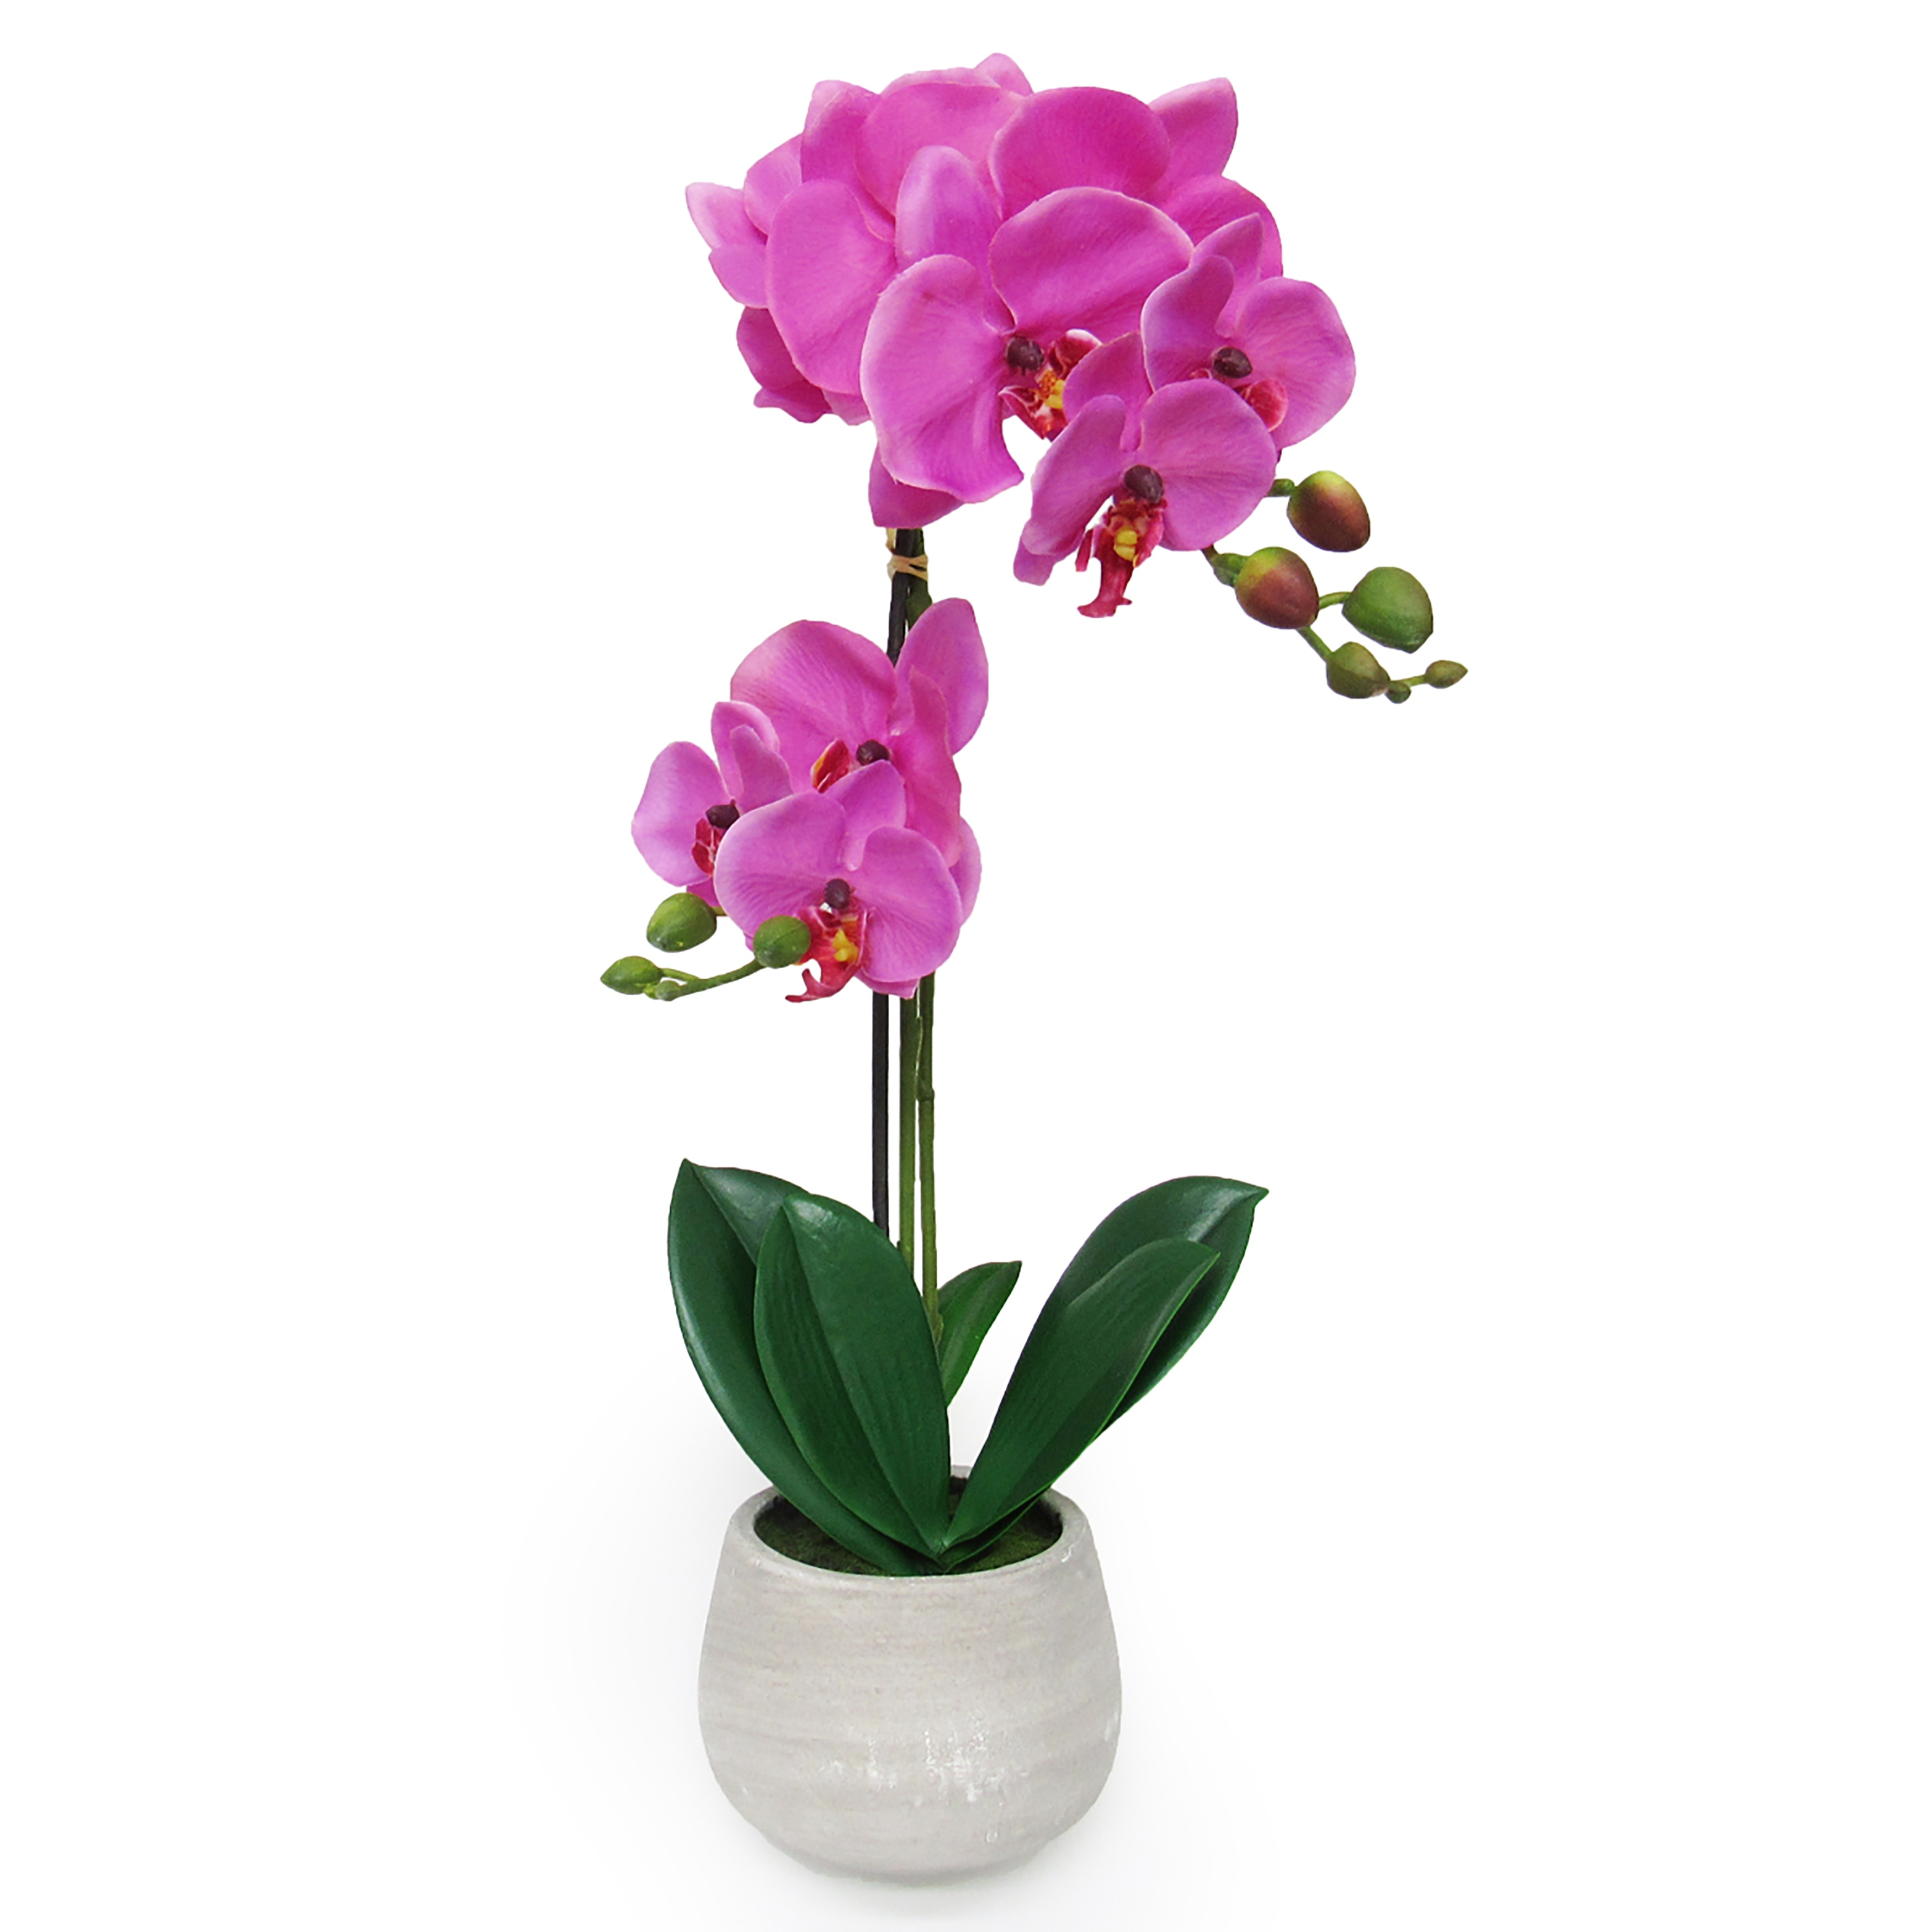 Phalaenopsis Orchid Flower Arrangement In Clay Pot 20in Overstock 32022852